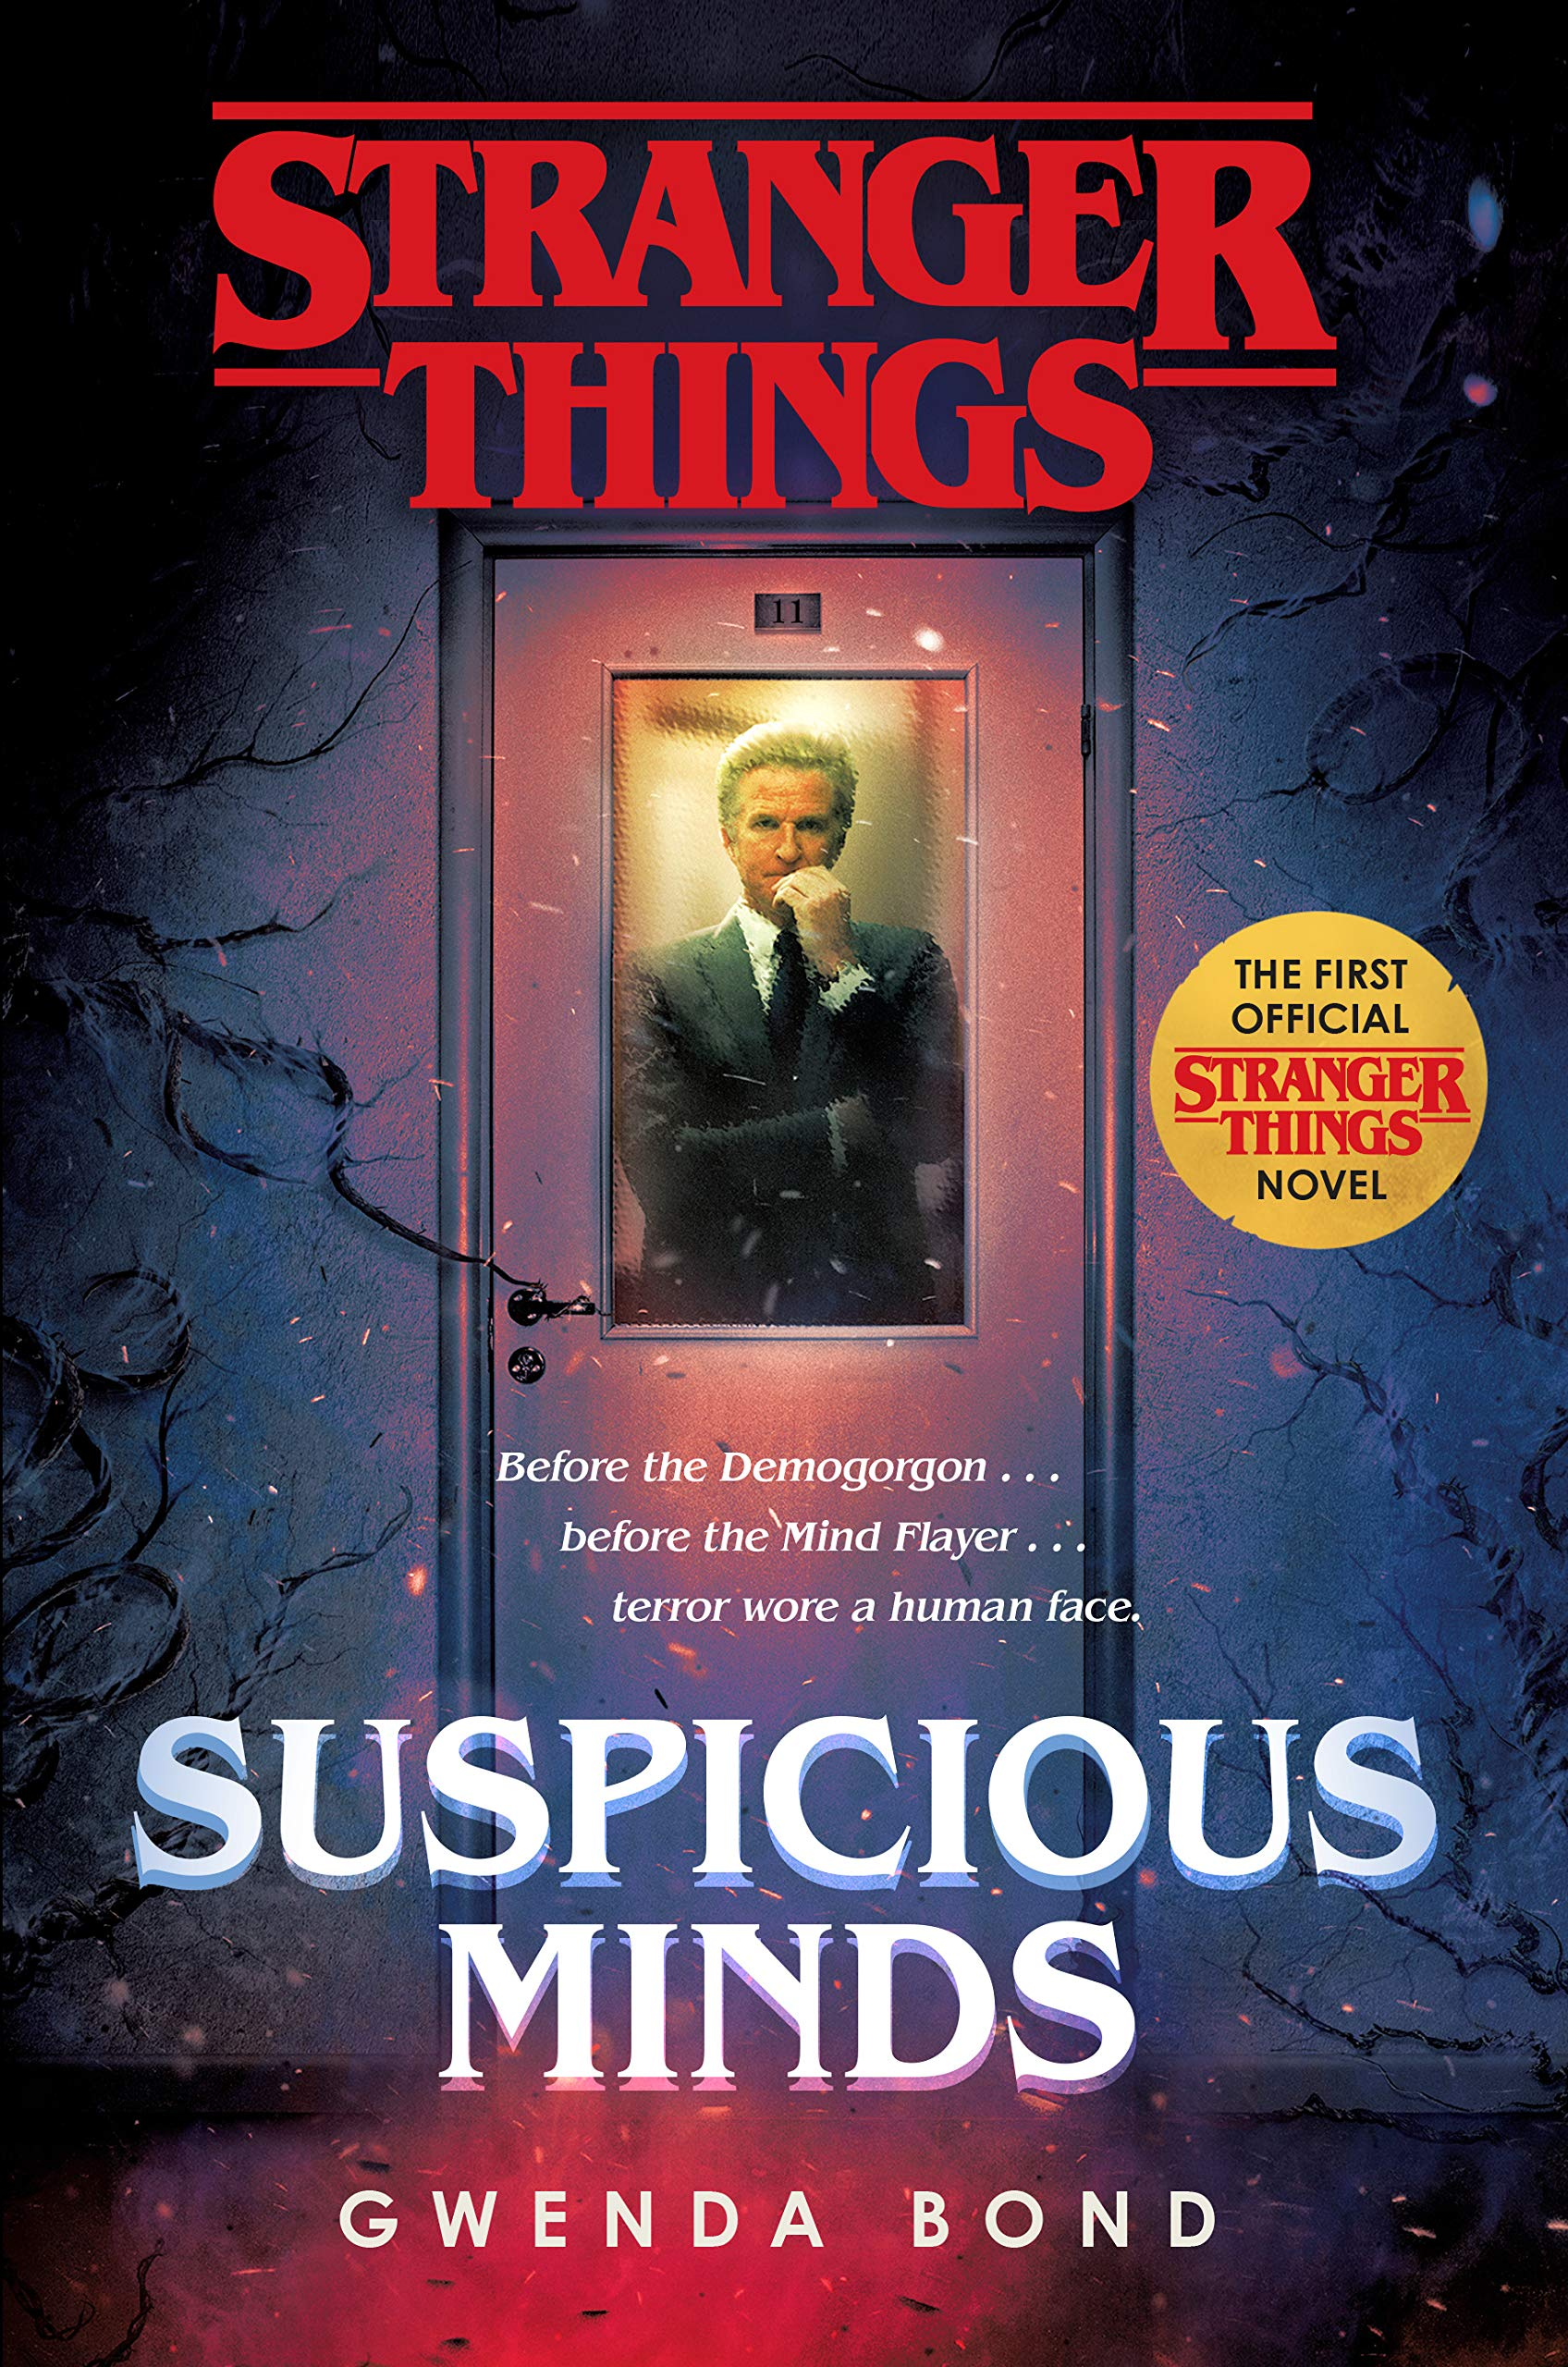 Stranger Things: Novel #1